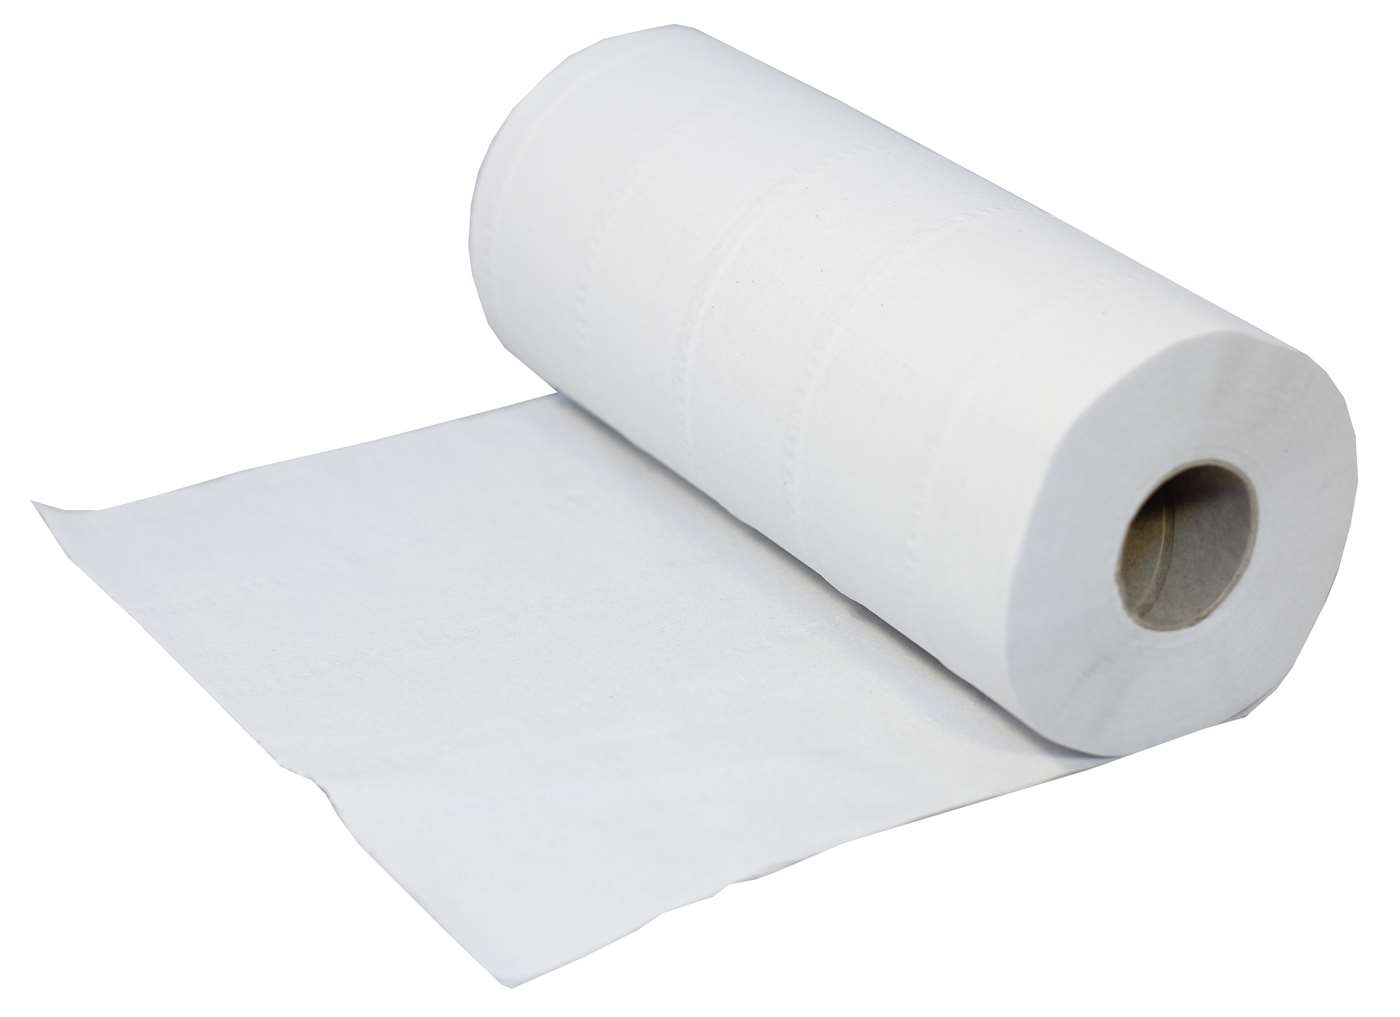 PRO Hygiene Roll 2 Ply White 25cm x 40m 100 sheets per roll